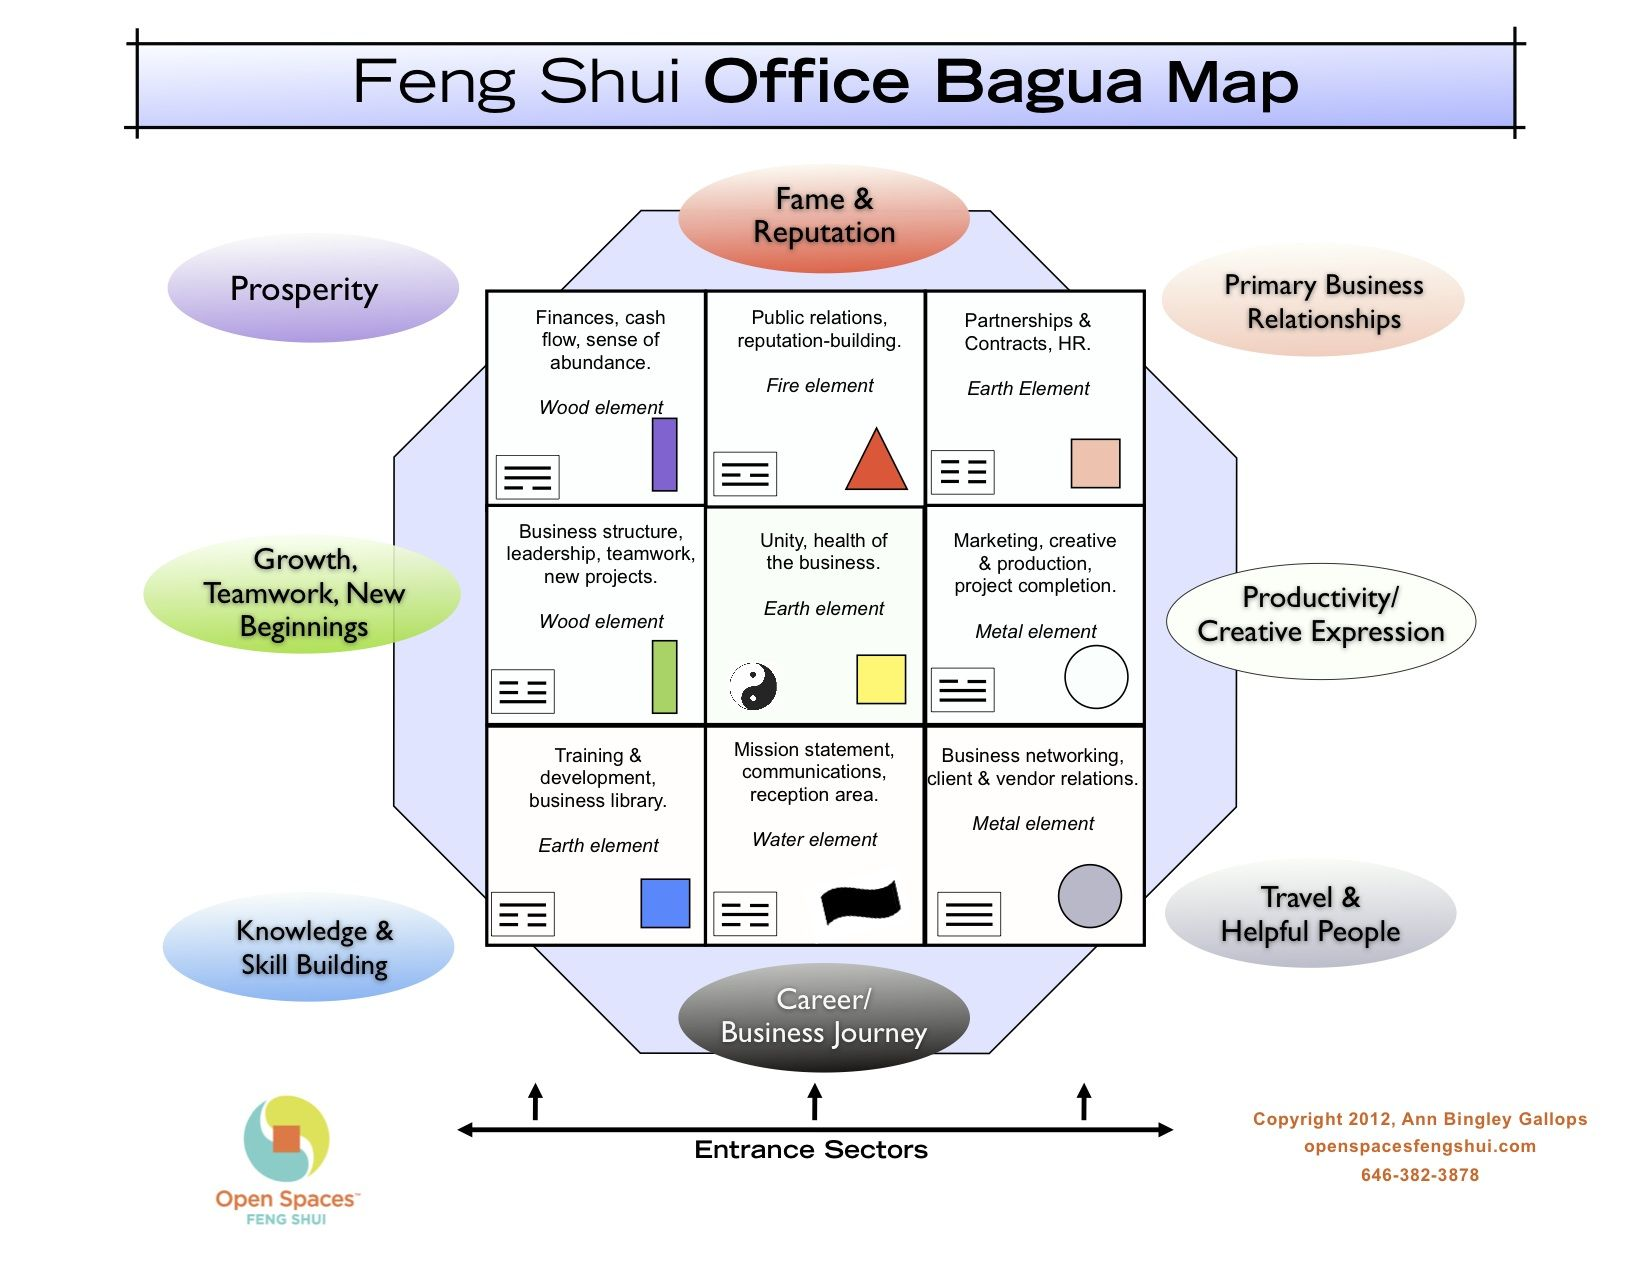 Feng Shui Office Layout Jpg 1 651 1 275 Pixels Feng Shui